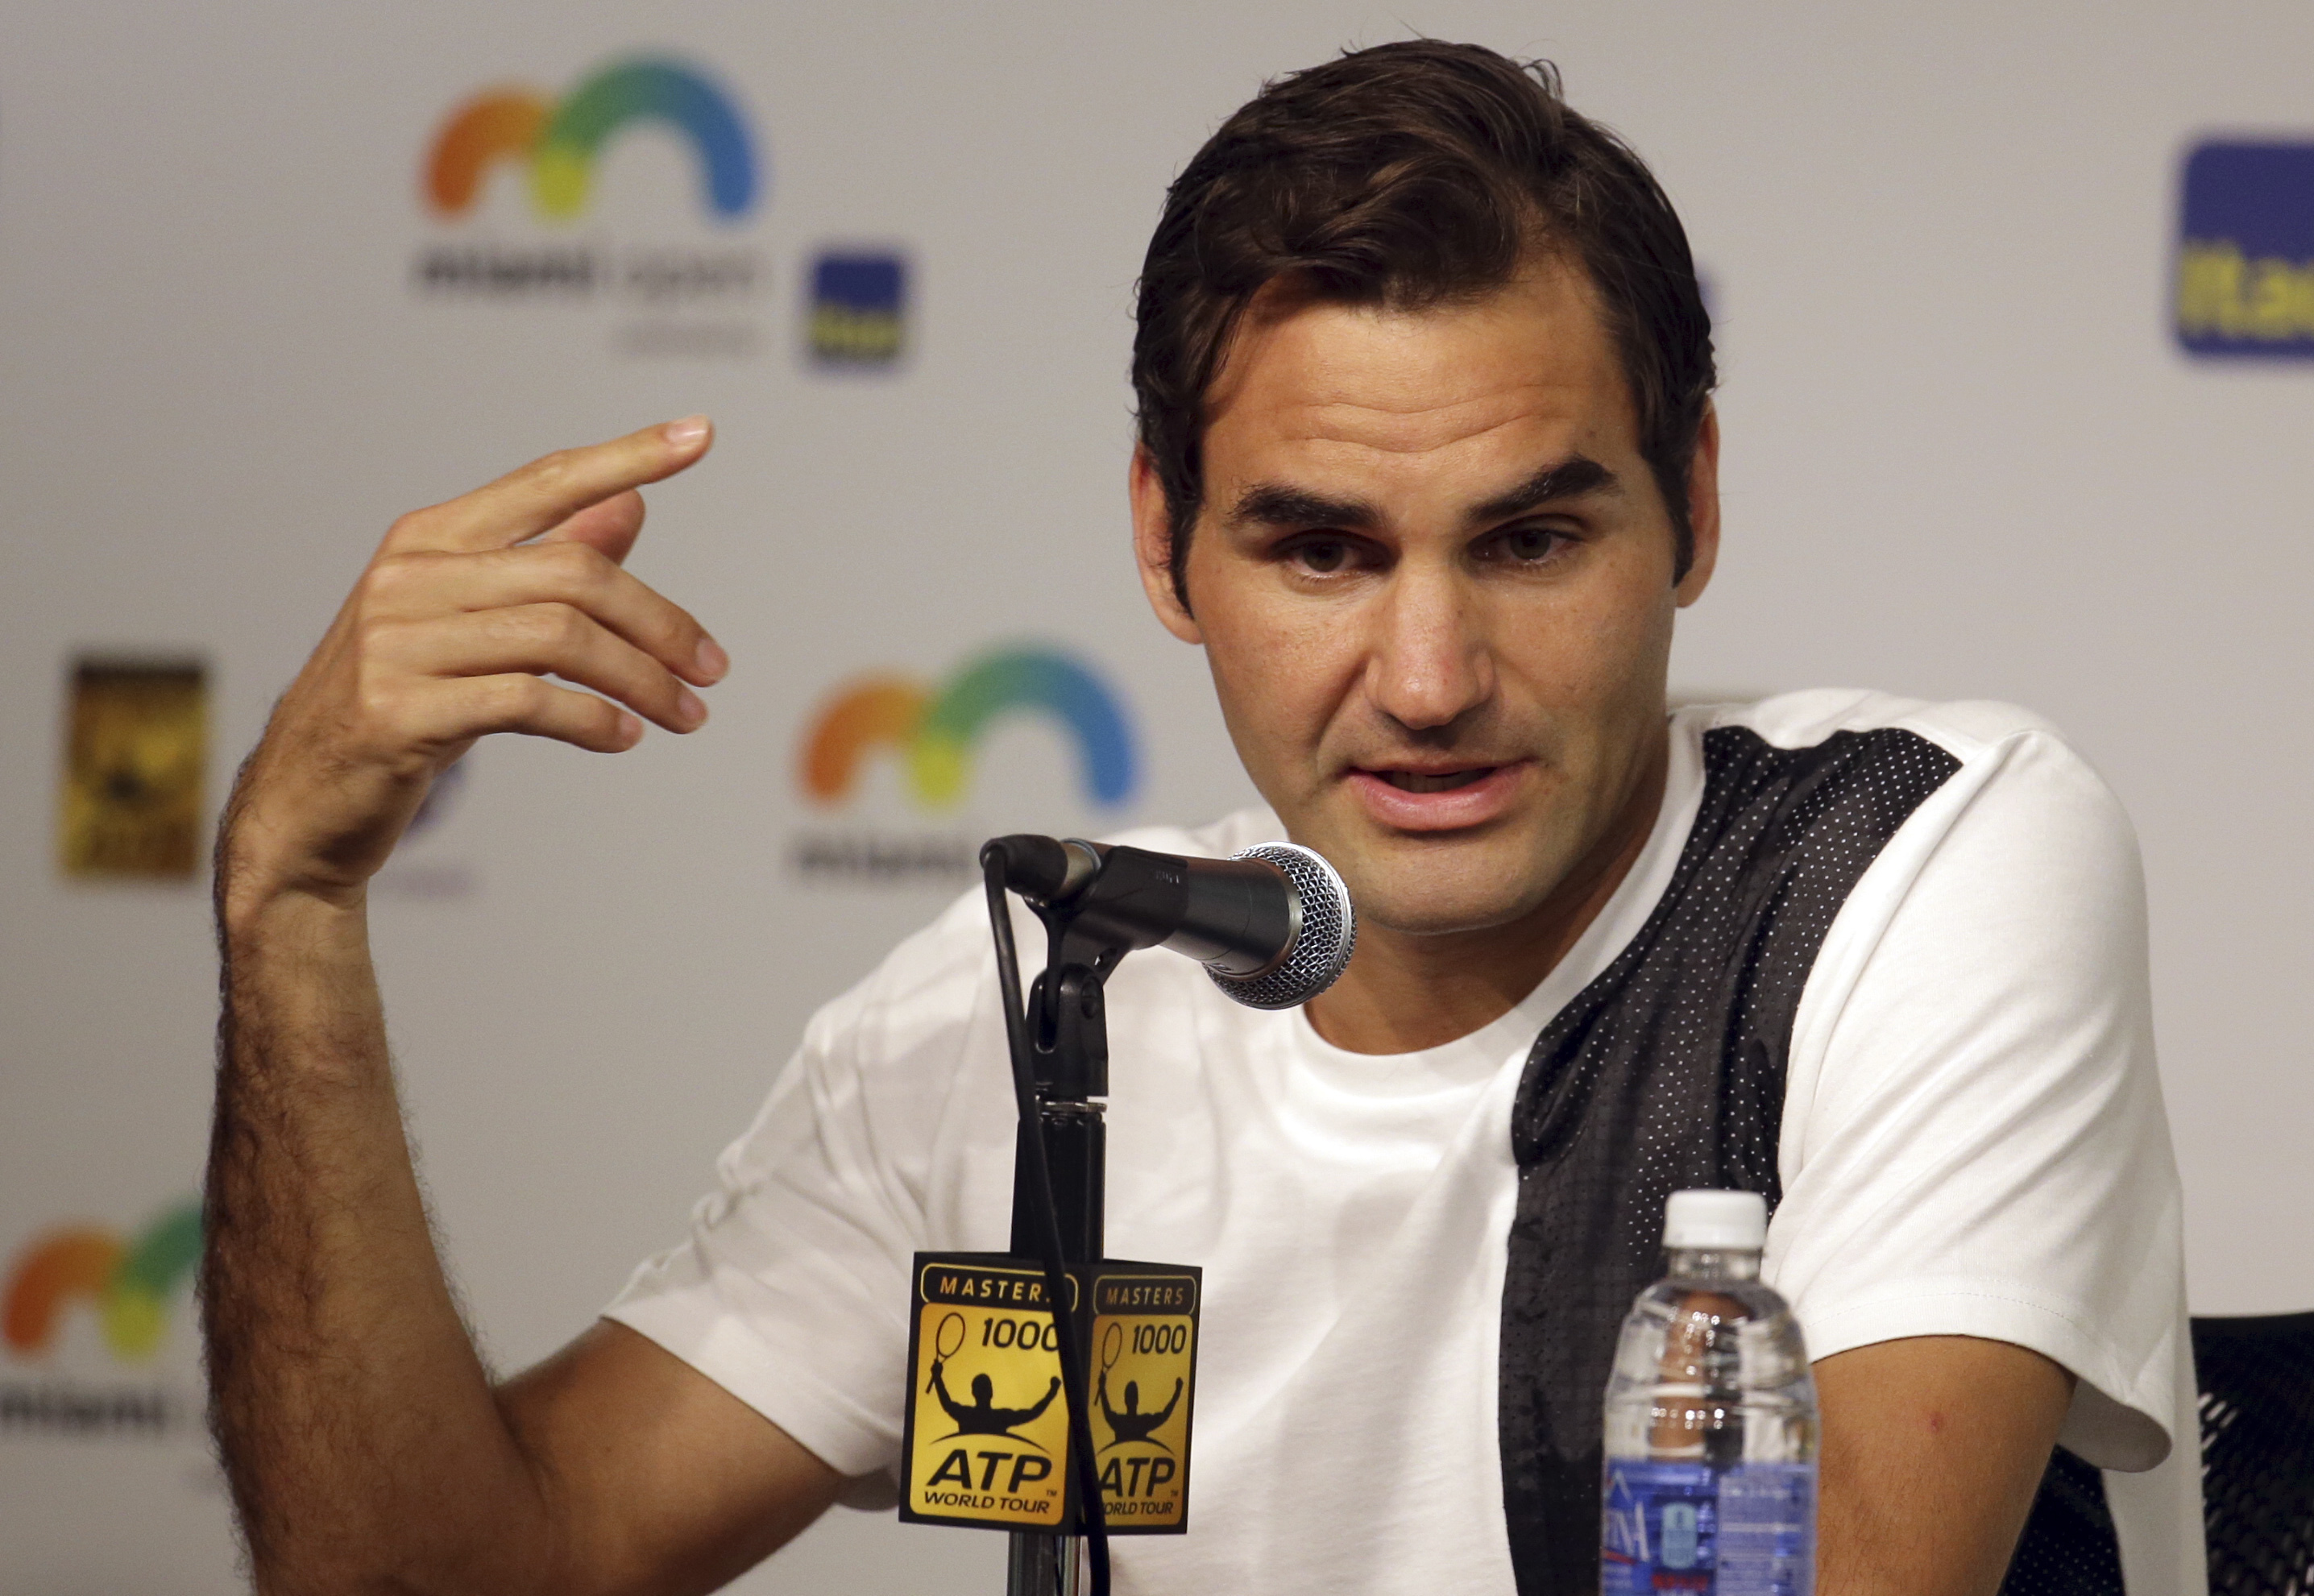 Roger Federer, of Switzerland, responds to a question during a news conference at the Miami Open tennis tournament, Thursday, March 24, 2016, in Key Biscayne, Fla. This is Federer's first tournament since recovering from knee surgery. (AP Photo/Lynne Slad